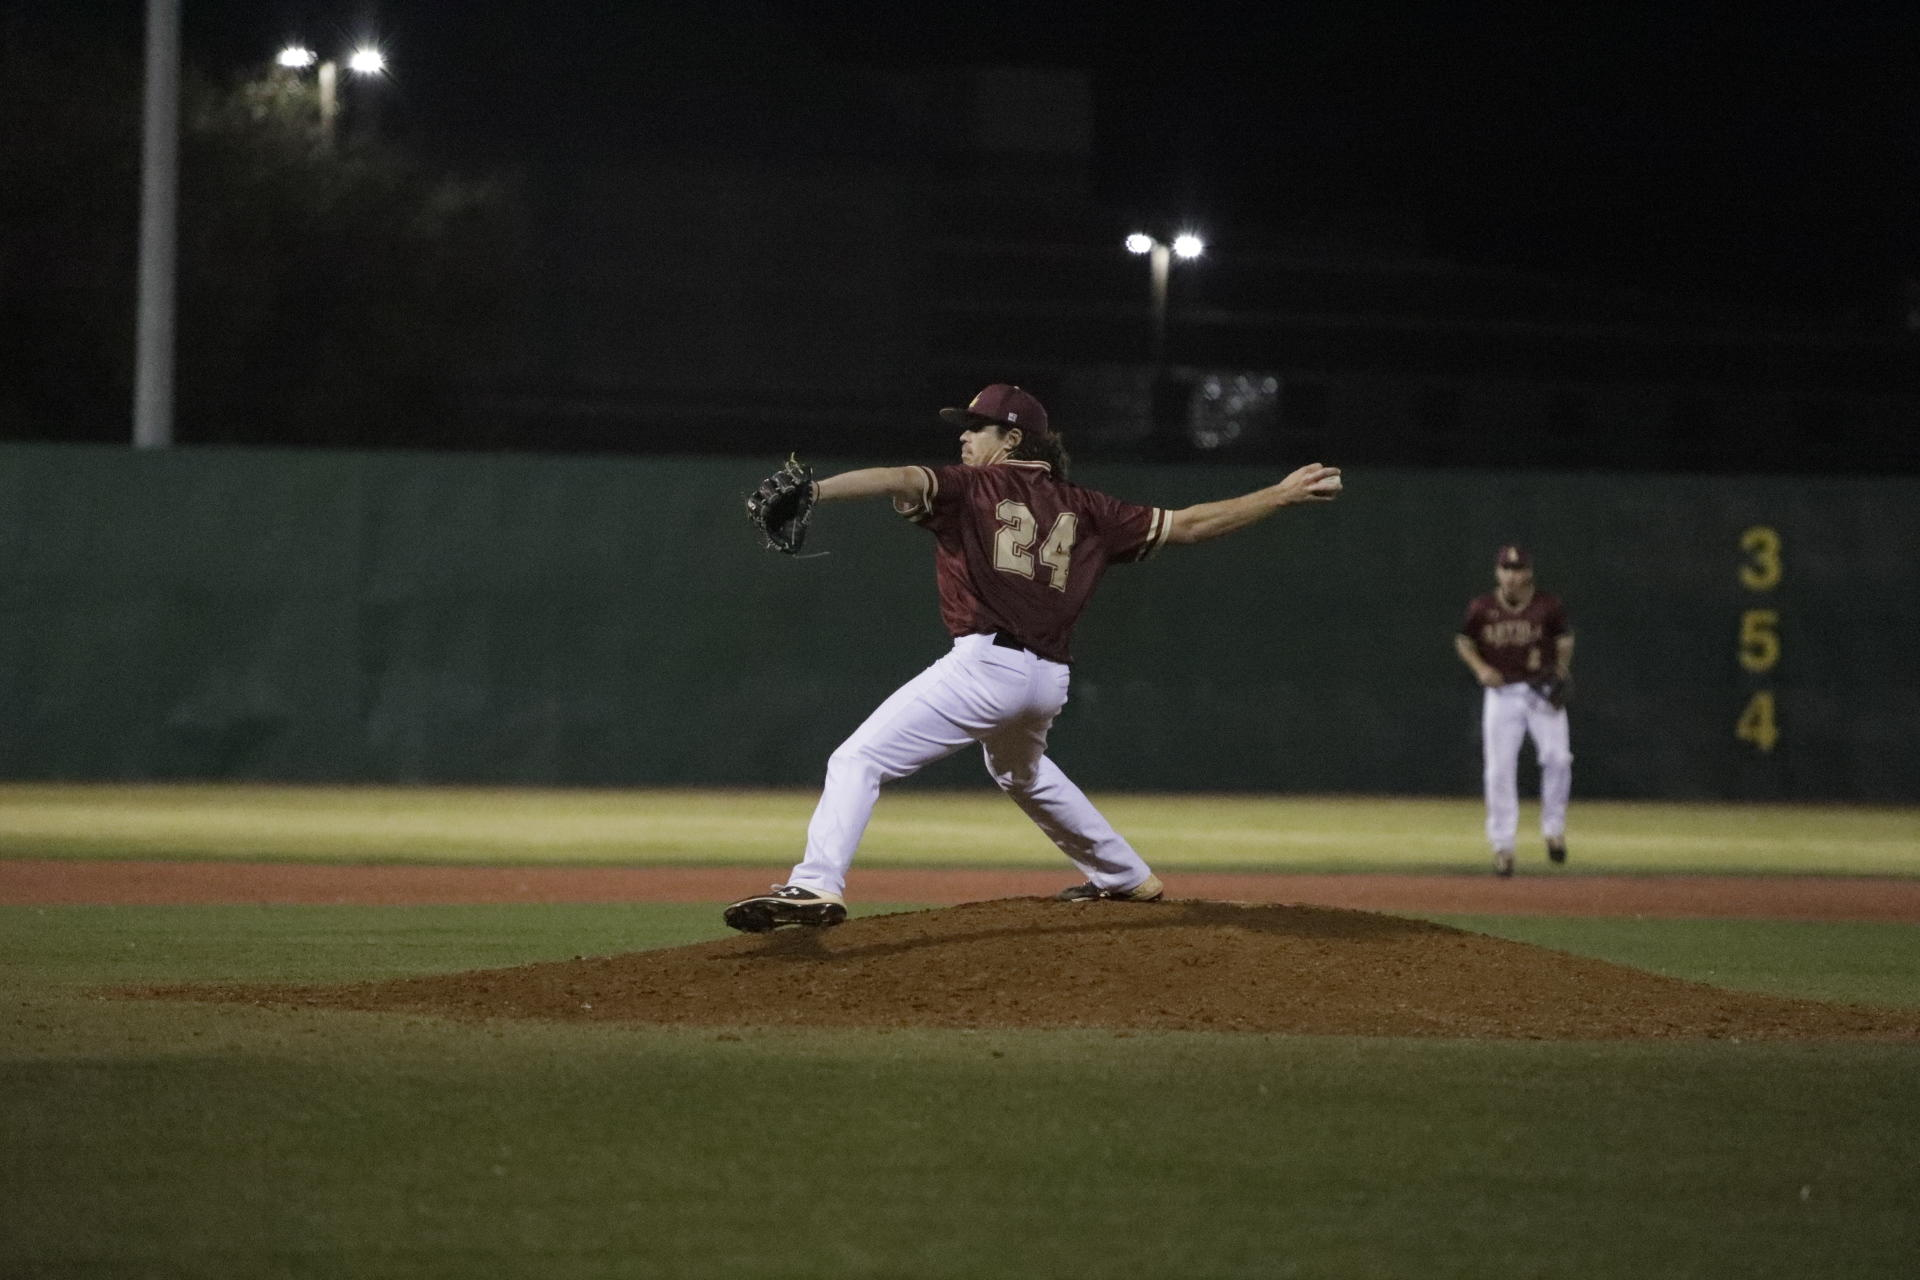 Computer information systems junior Gary Cavallo Jr. earned his third win of the season. Cavallo threw for six innings and allowed just two runs and striking out five batters.